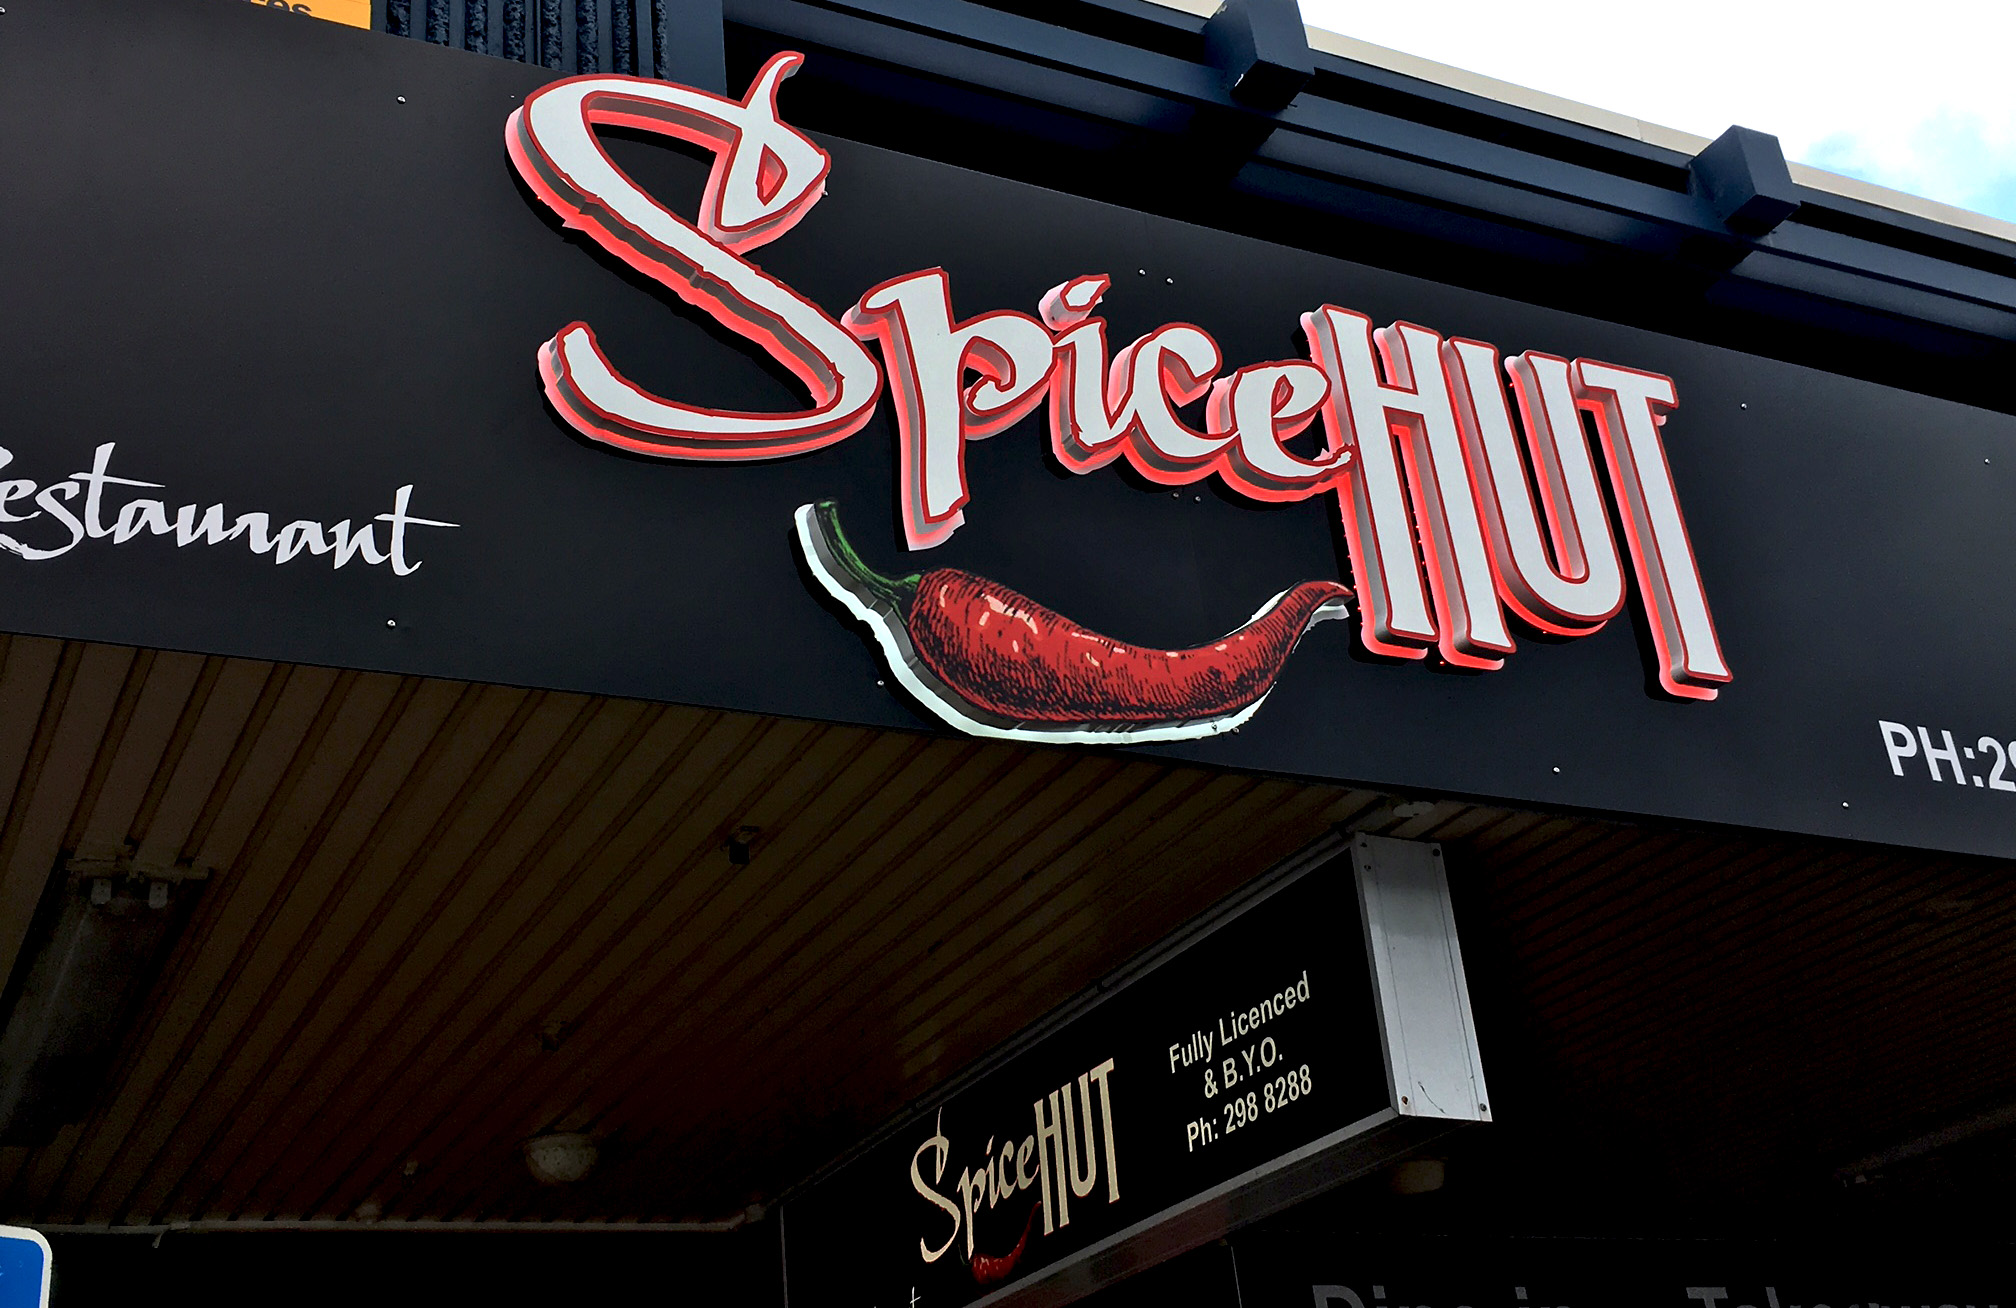 Spice Hut Coastlands